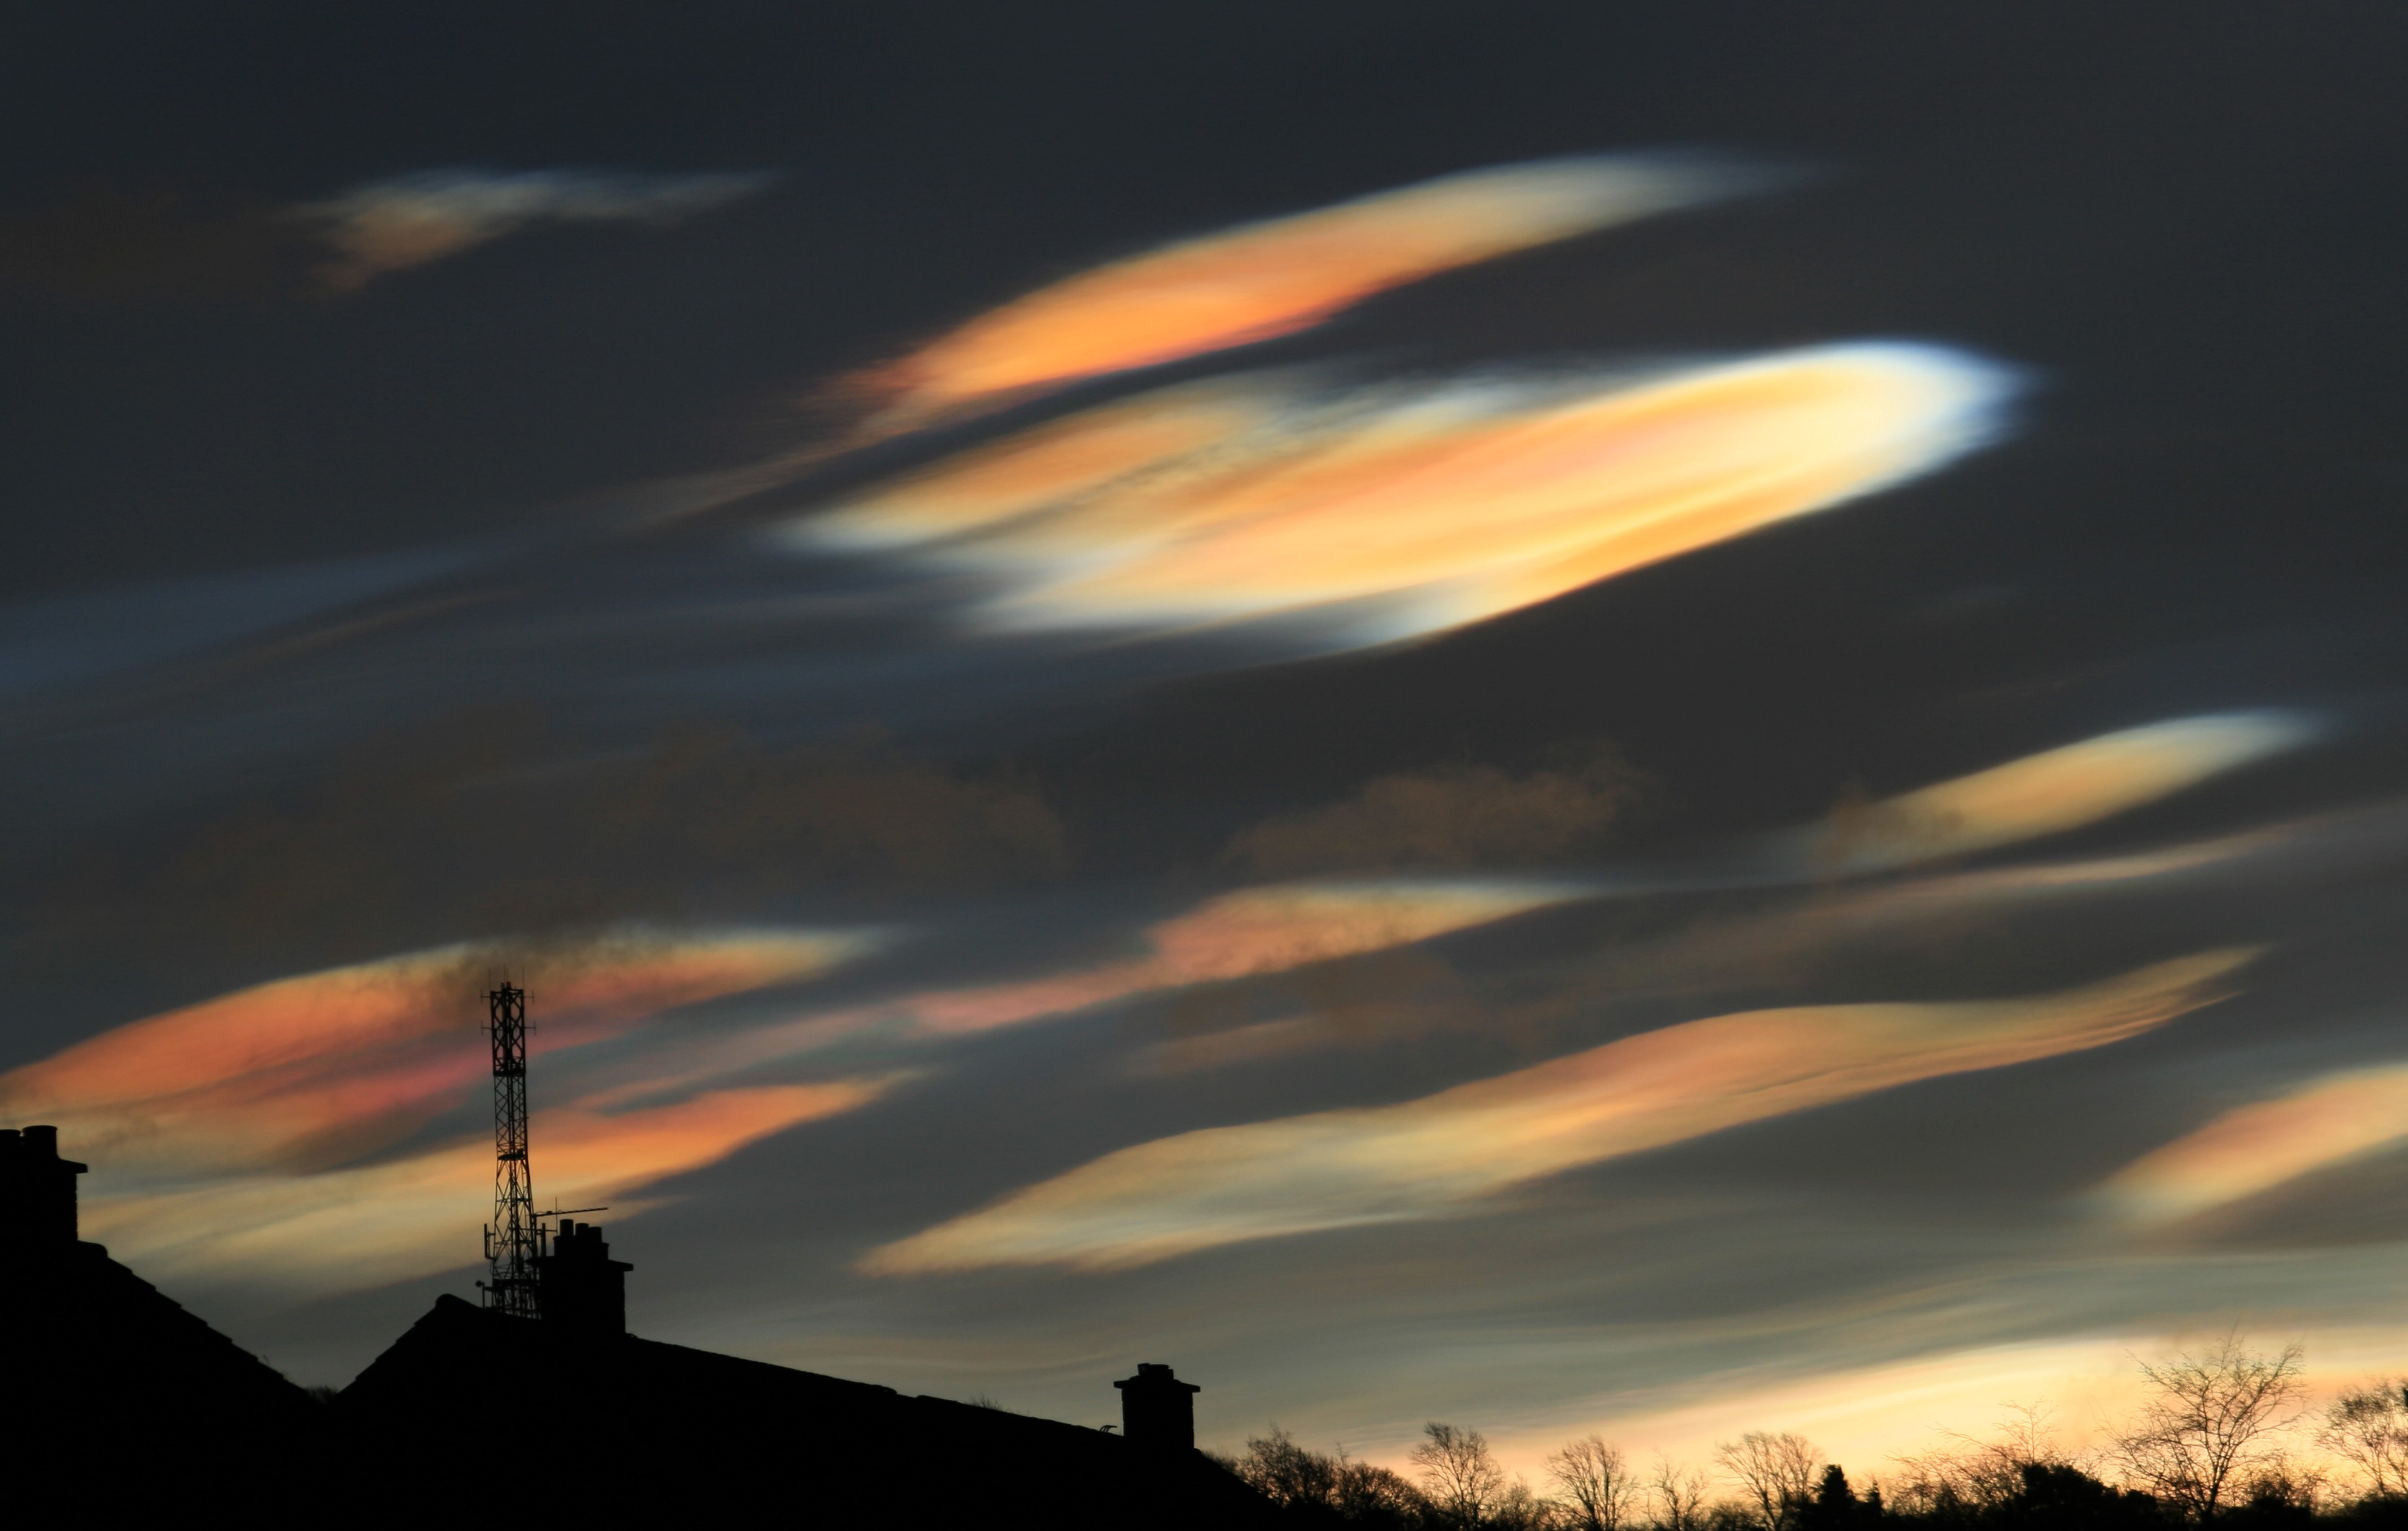 Seen rainbow-like, mother of pearl clouds? Rare Nacreous